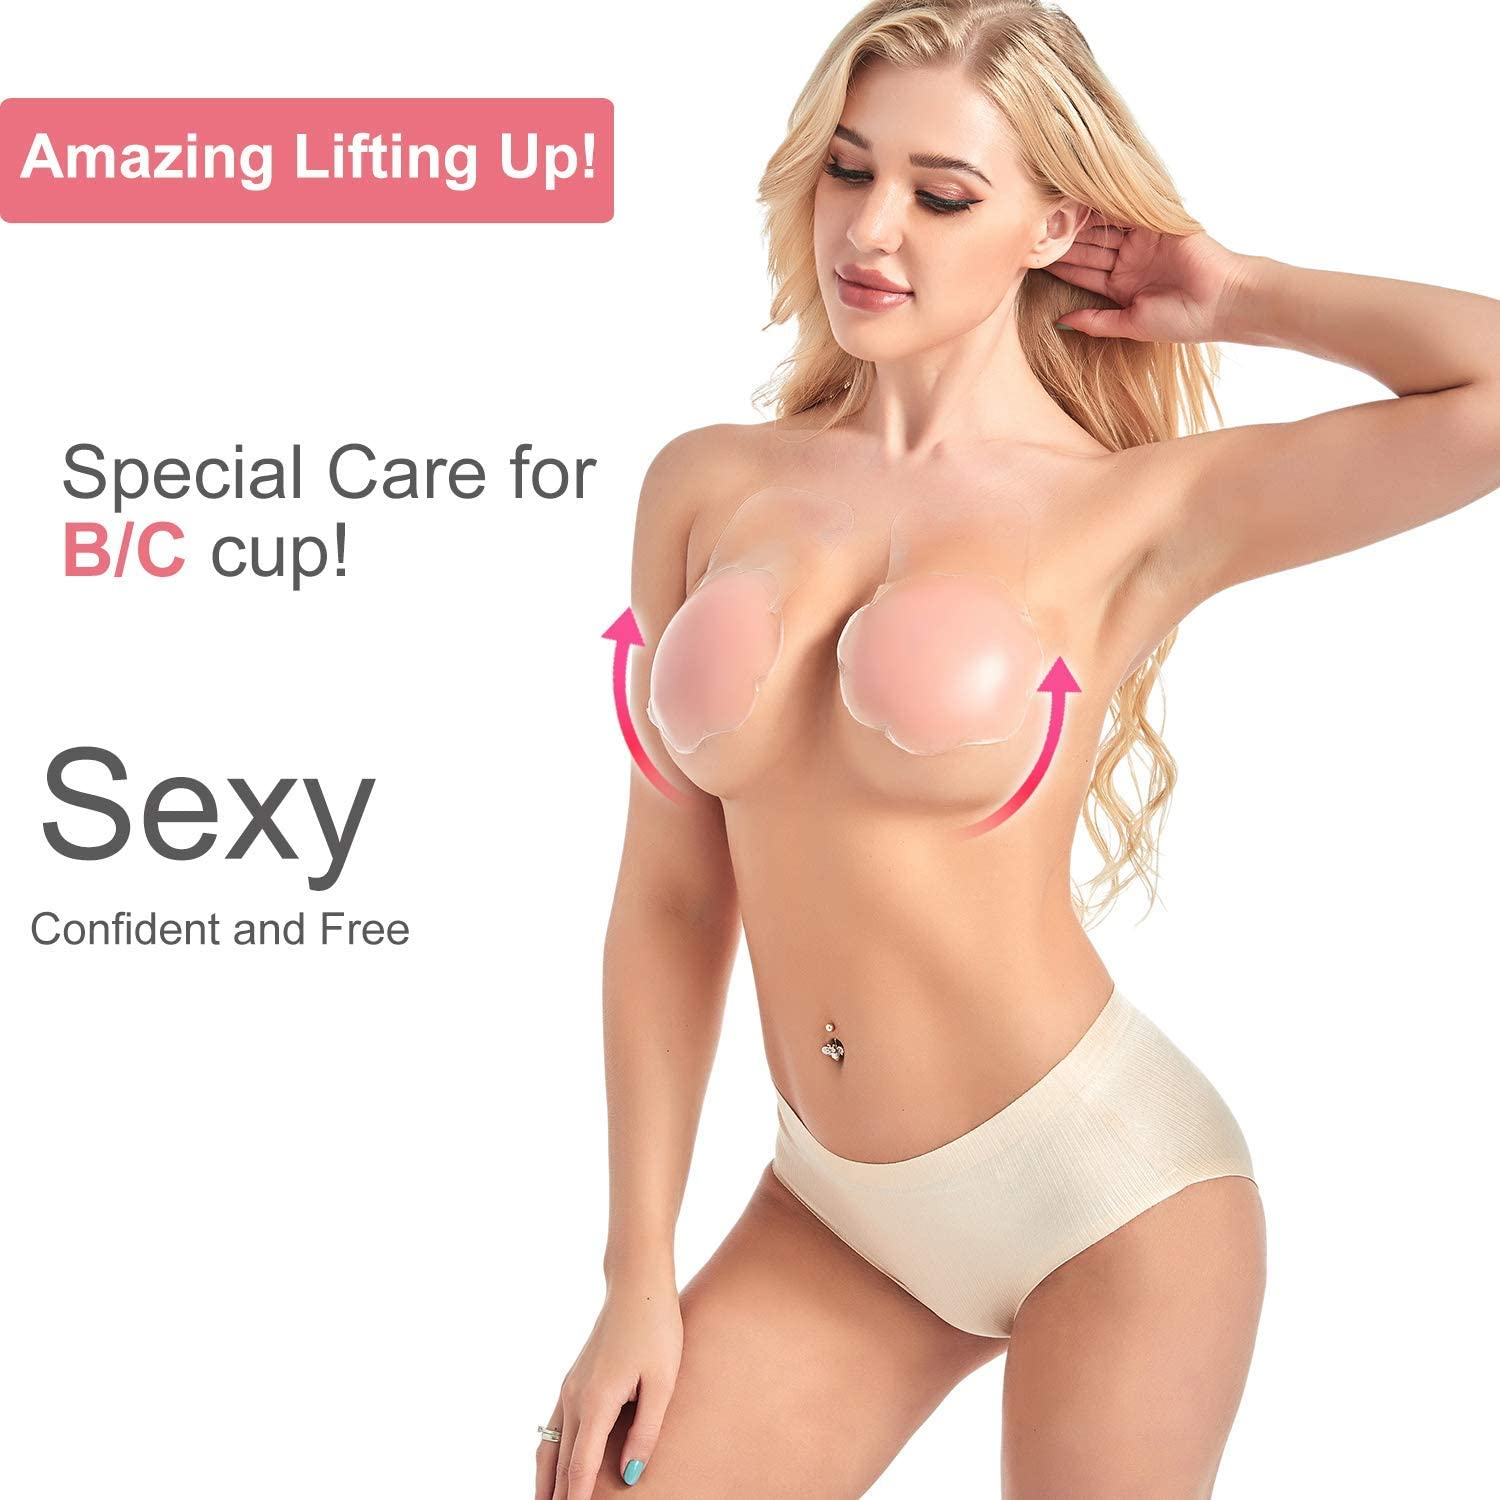 Adhesive Nippleless Covers Extra Thin /& Soft 4.7 Inches BBDINO Invisible Breast Lift Pasties 2 Pairs Silicone Invisible Lift Up Bra